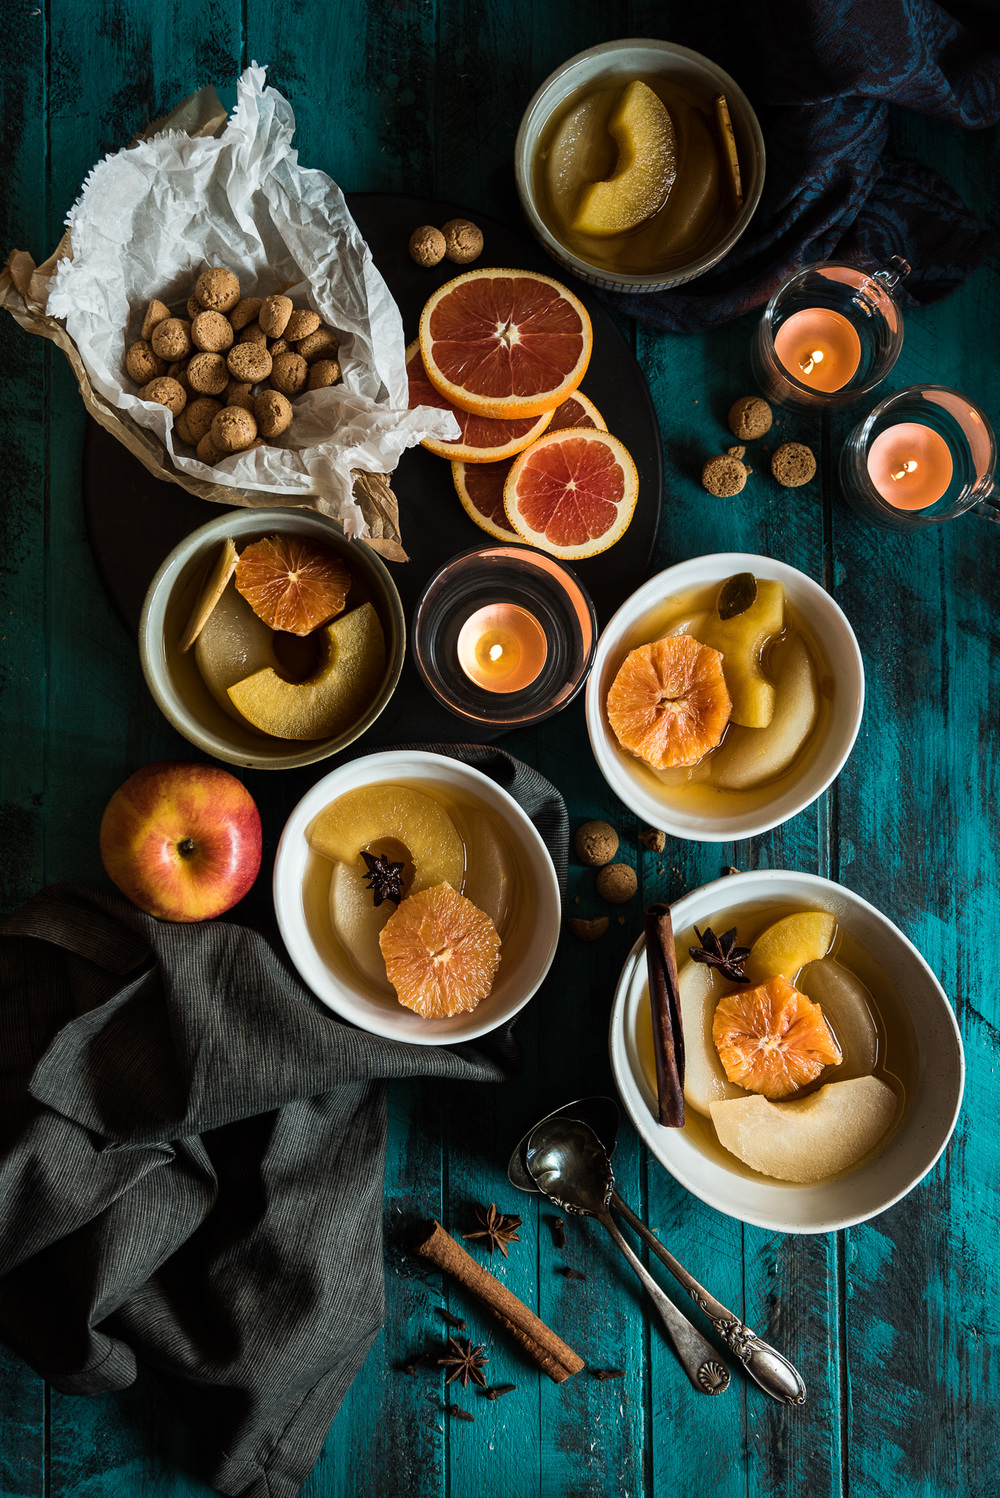 1601_Fruit-Compote-With-Tea_021.jpg